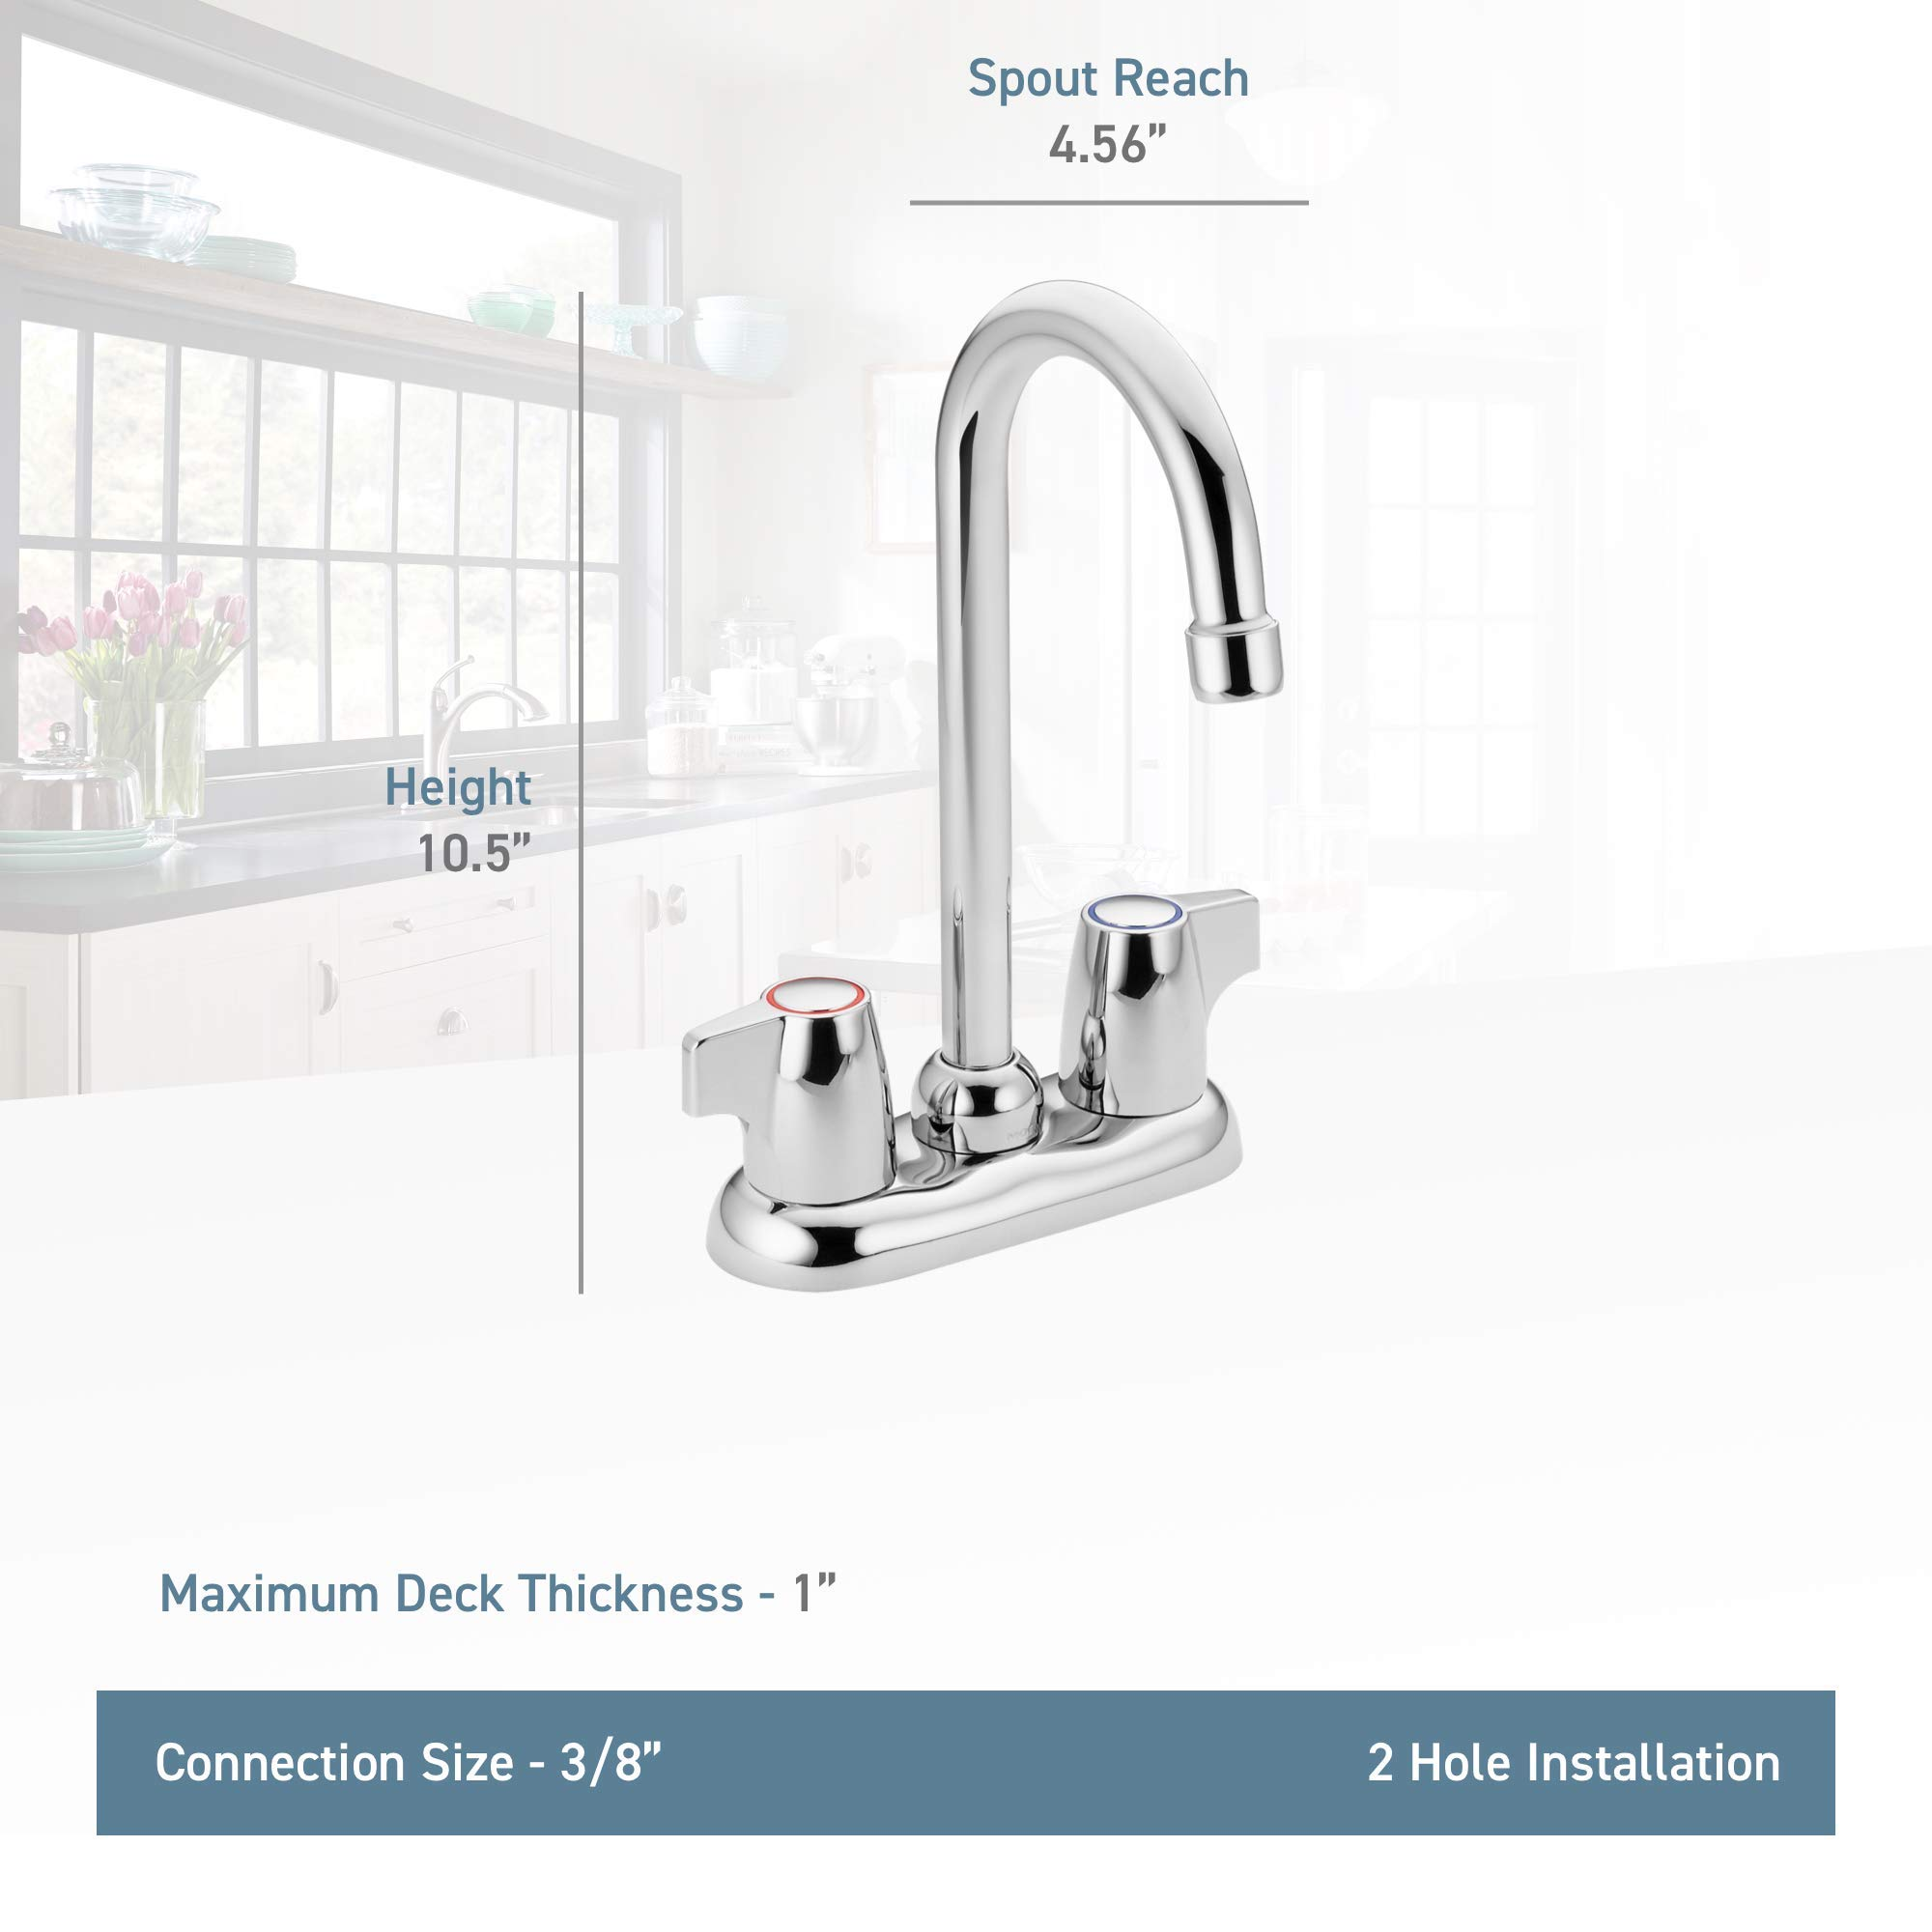 Moen 4903 Chateau Two-Handle High Arc Bar Faucet, Chrome (Renewed)